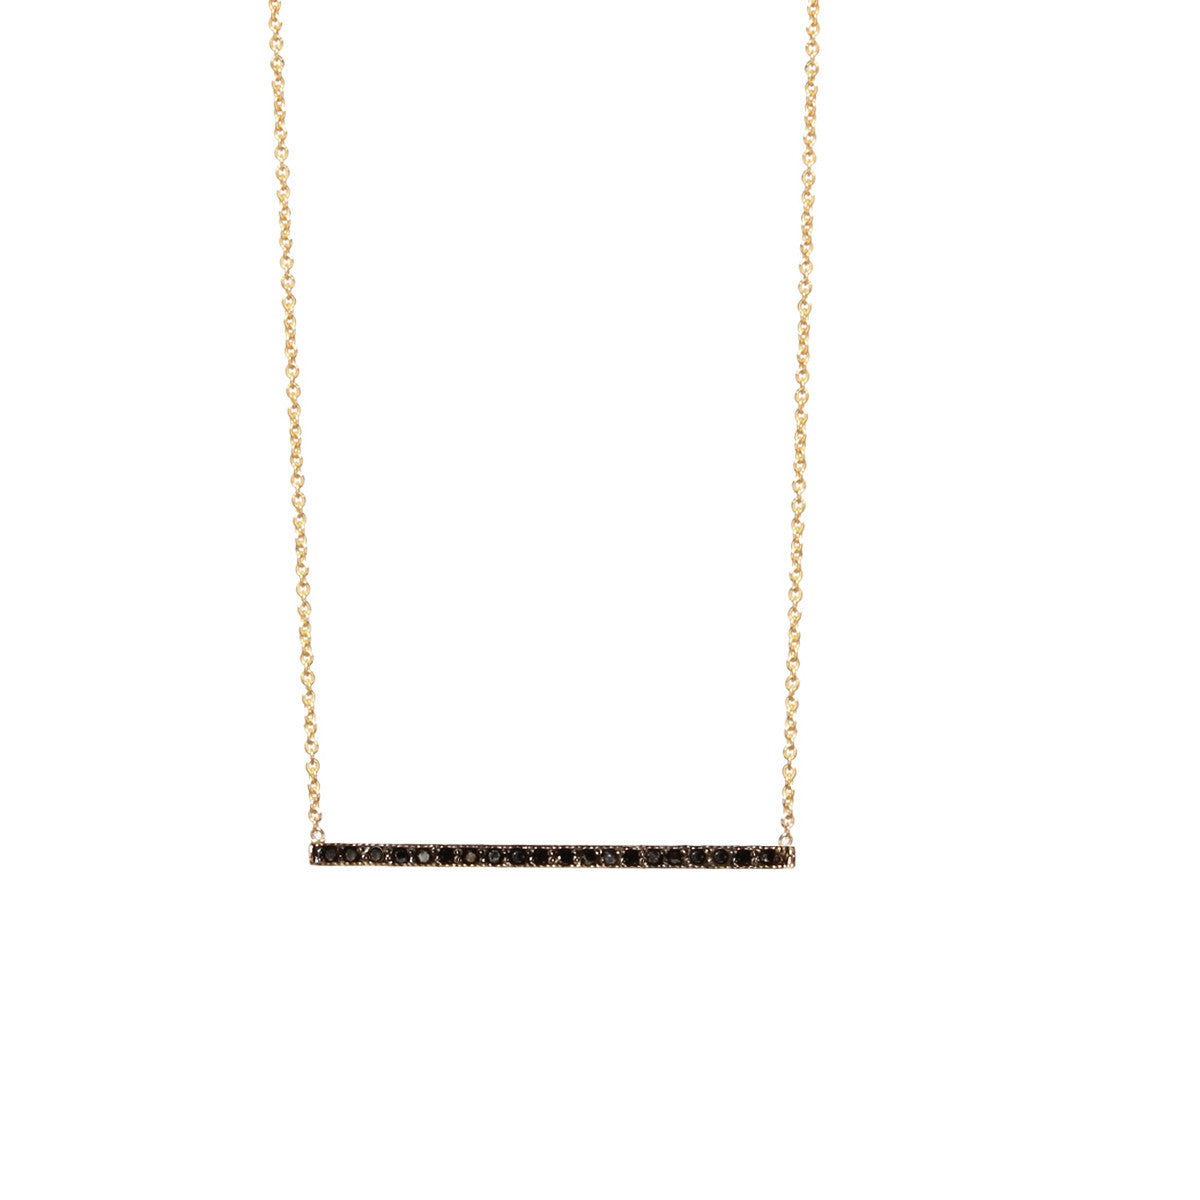 14k black thin bar necklace